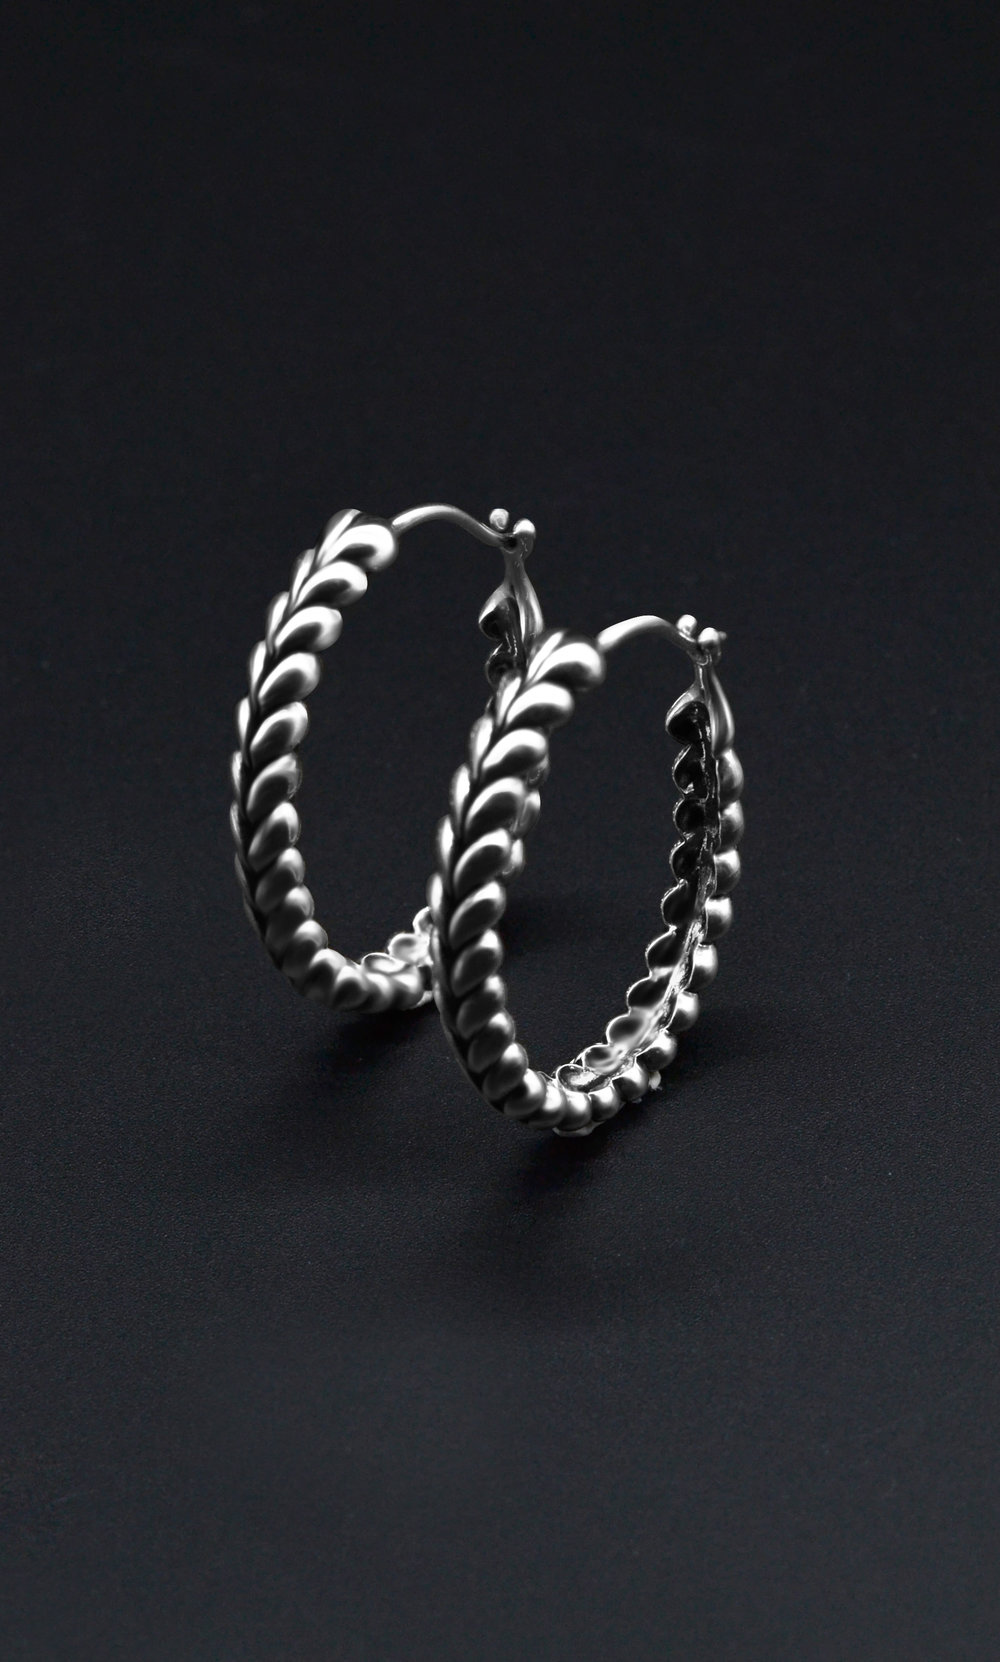 herringbone_earings_2.jpg